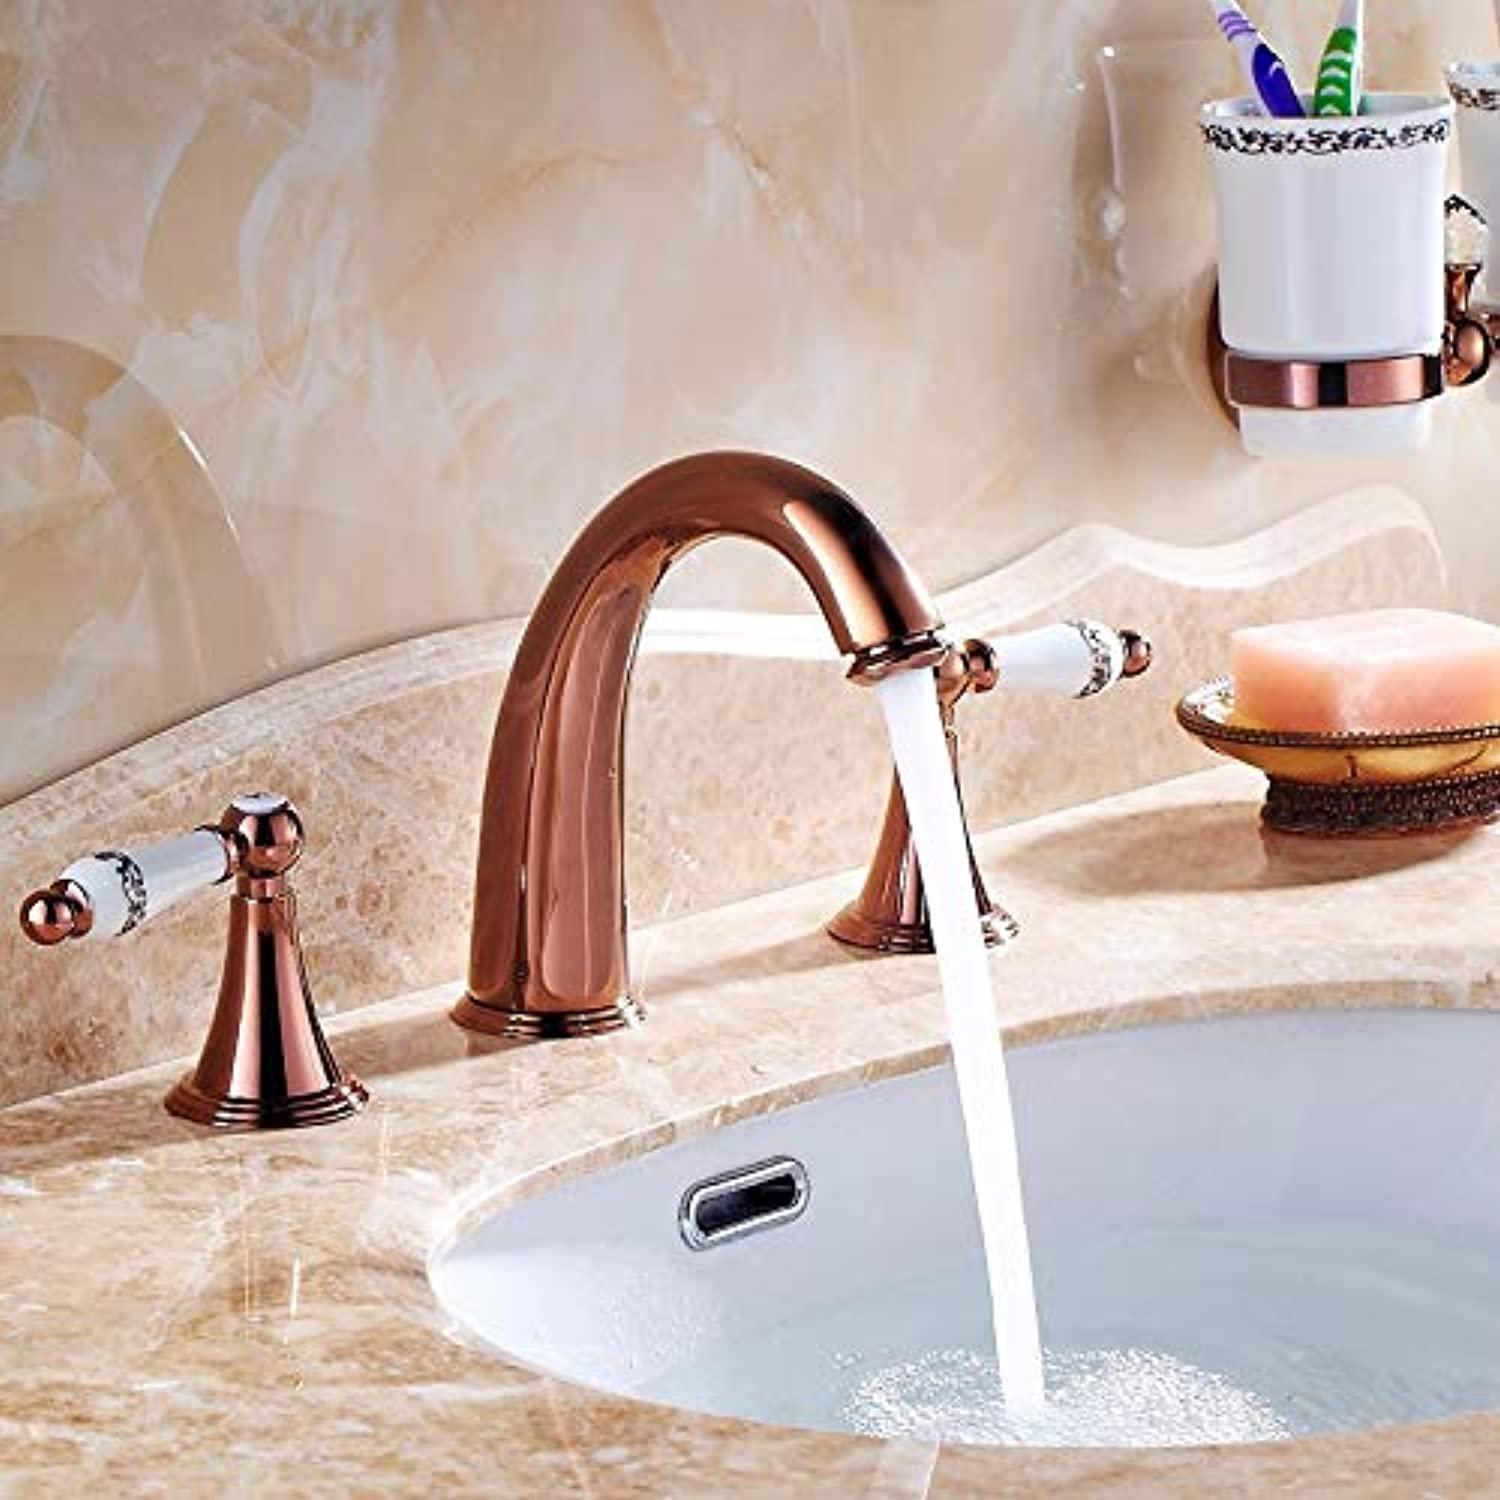 LHbox Basin Mixer Tap Bathroom Sink Faucet All copper european style antique gold three-hole faucet sub-basin and cold water, pink gold